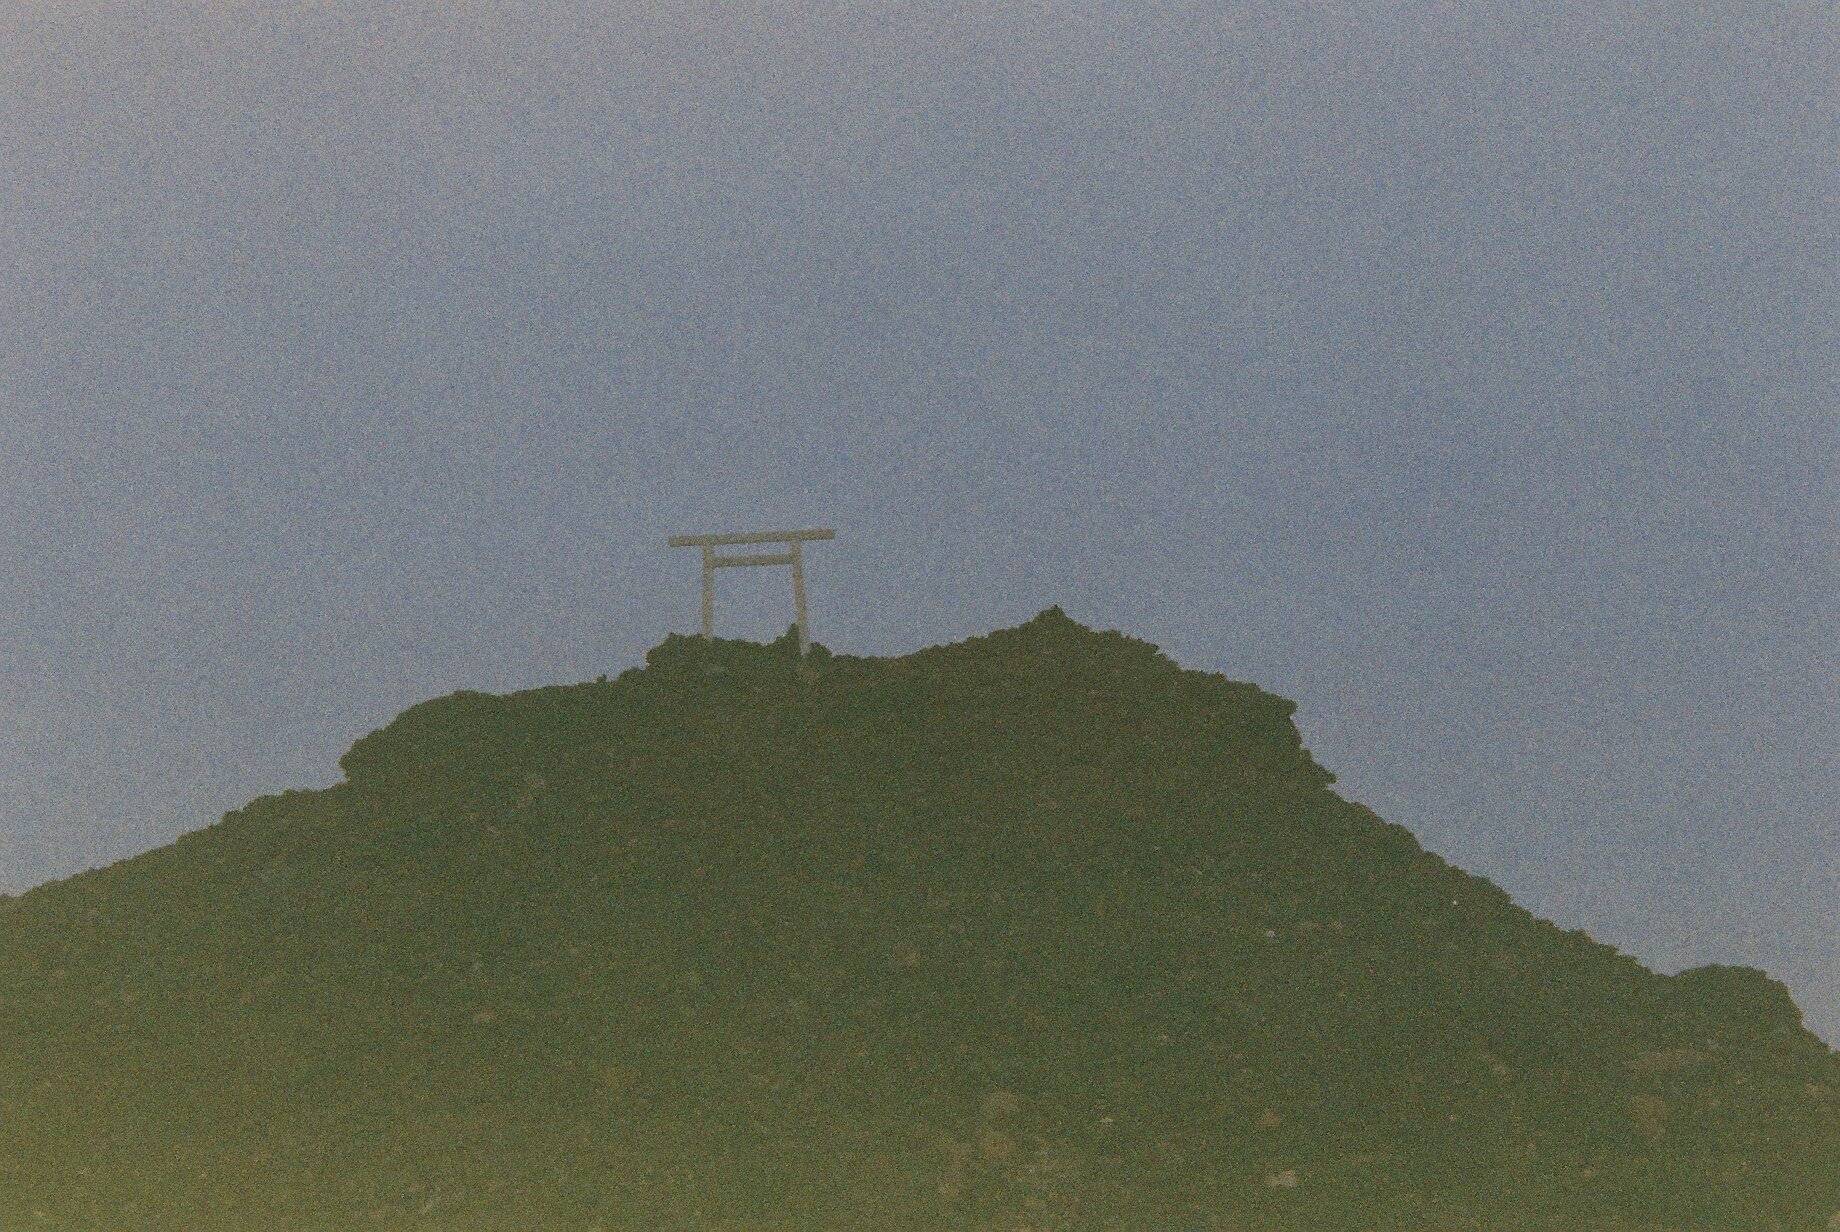 The Torii gate at the summit.